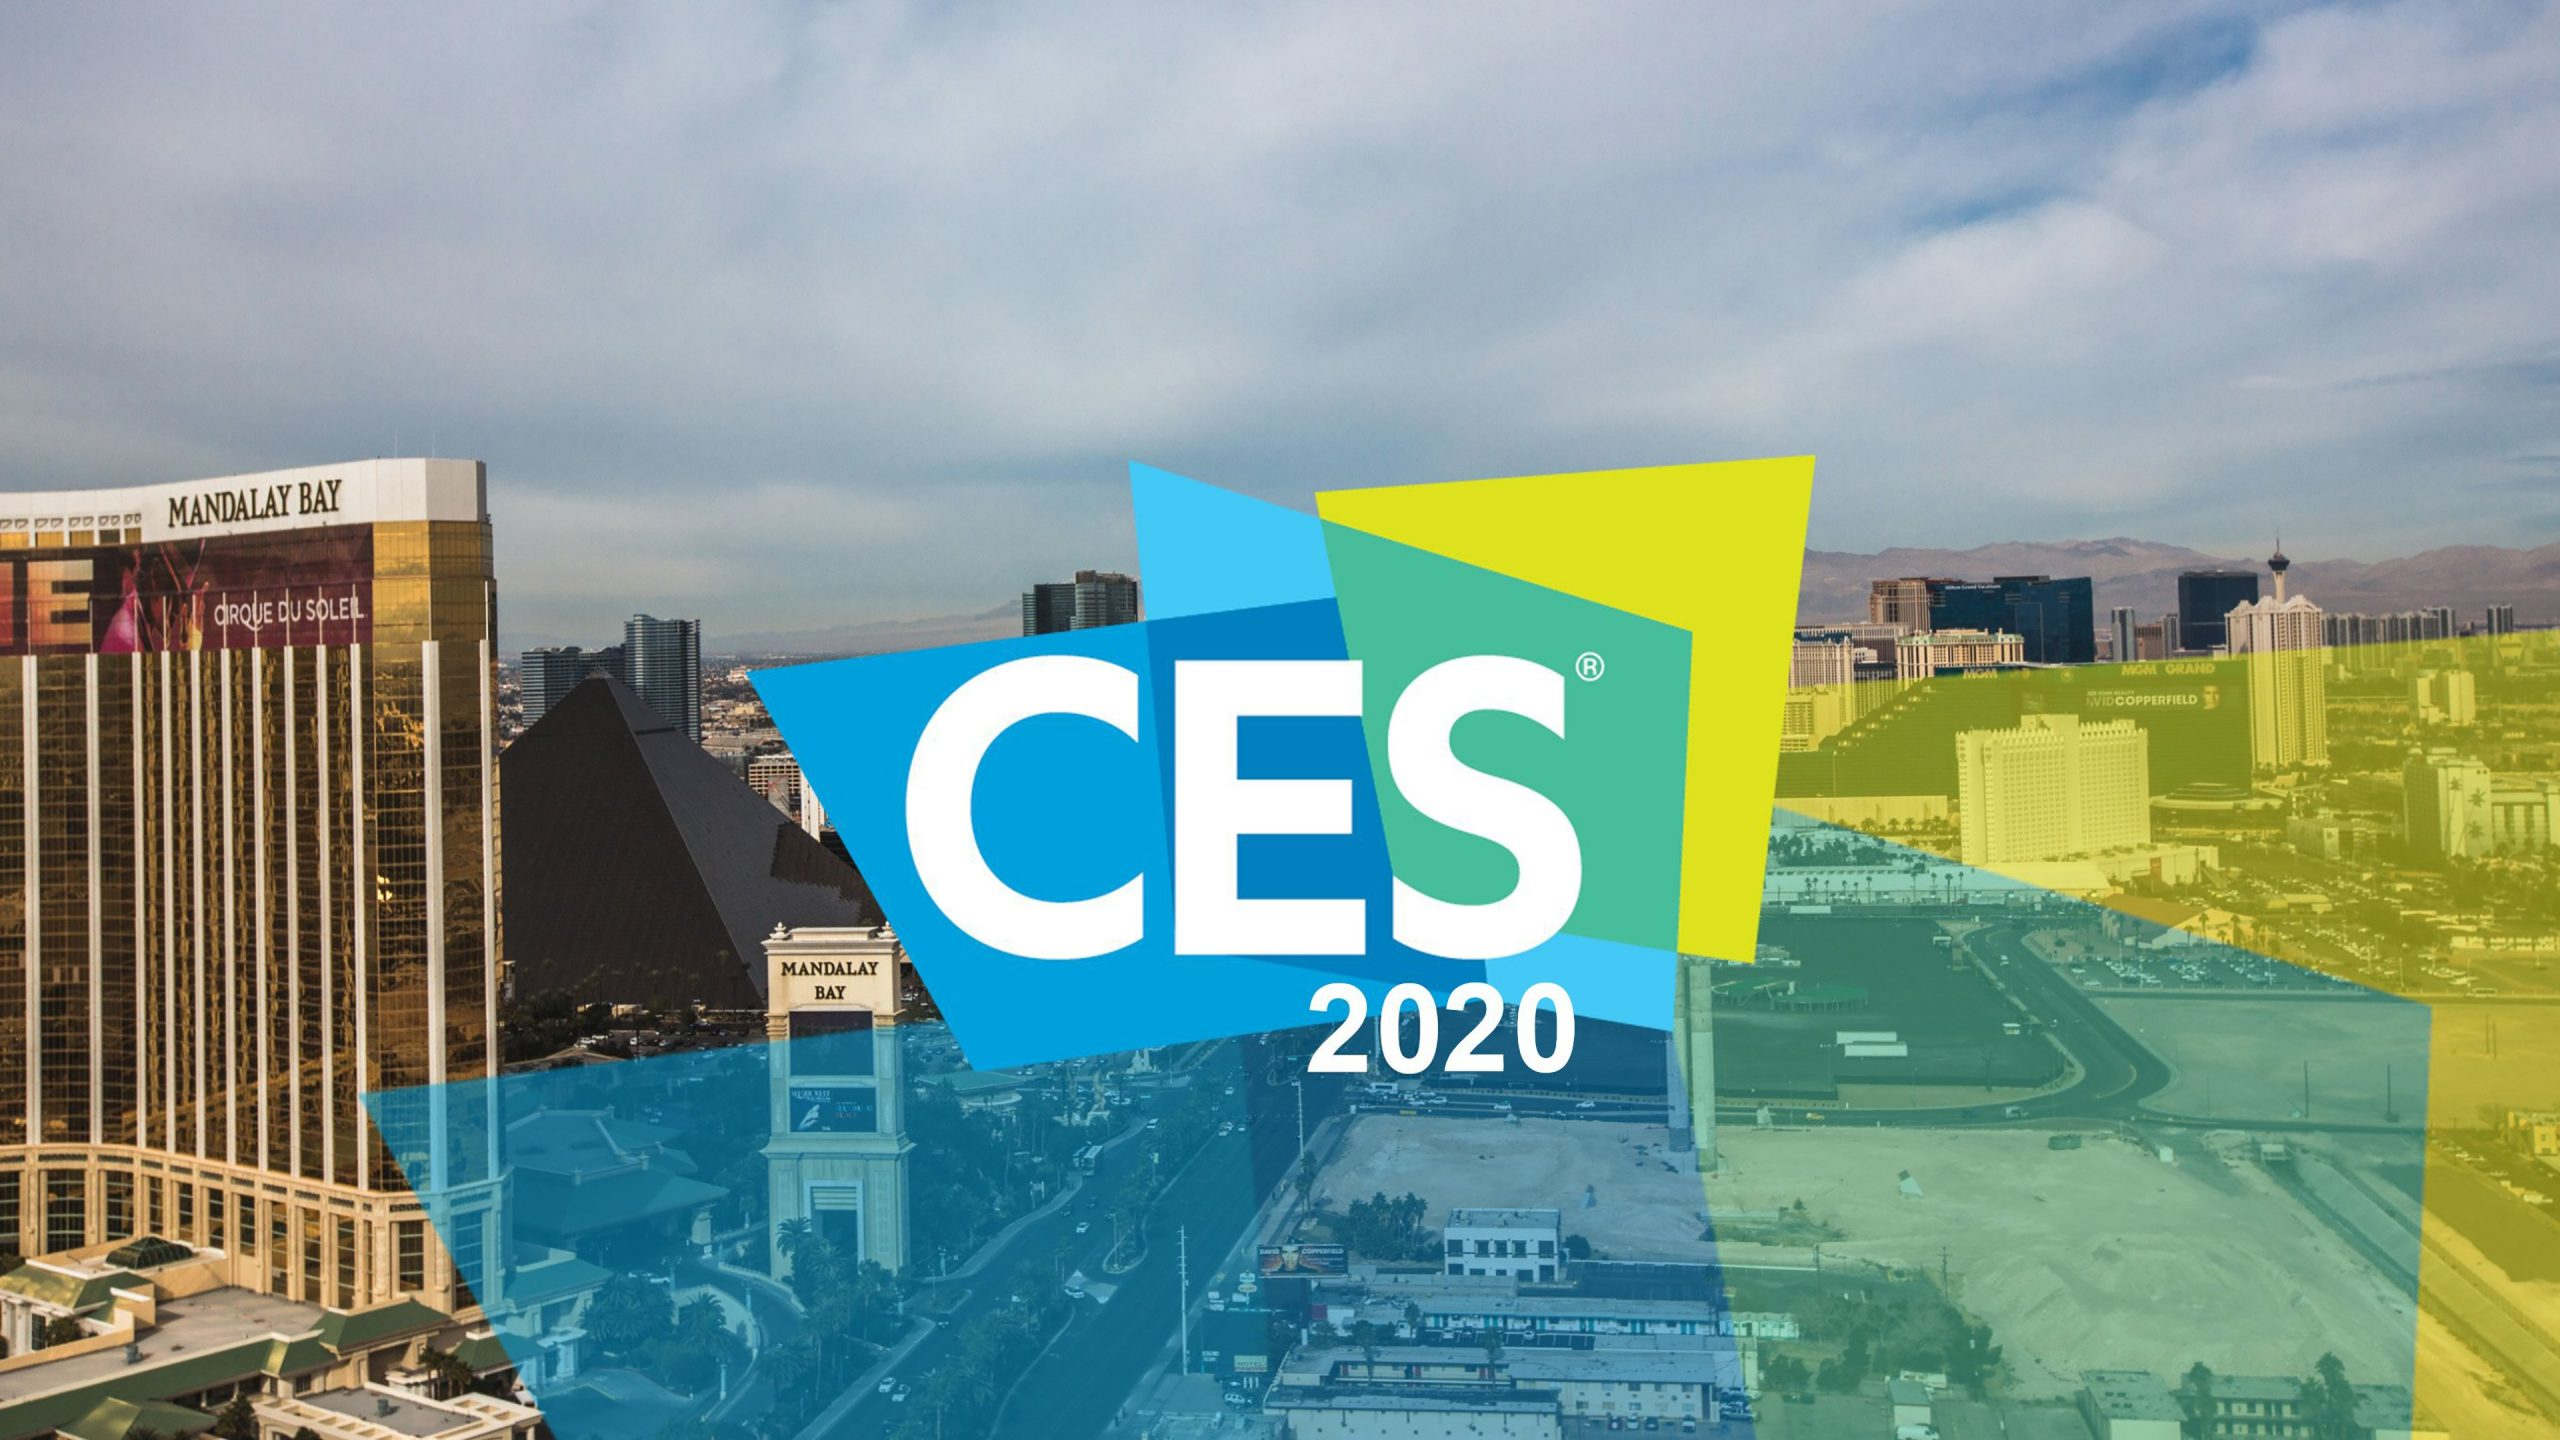 samsung-lg-prepare-to-showcase-latest-ai-technologies-at-ces-2020